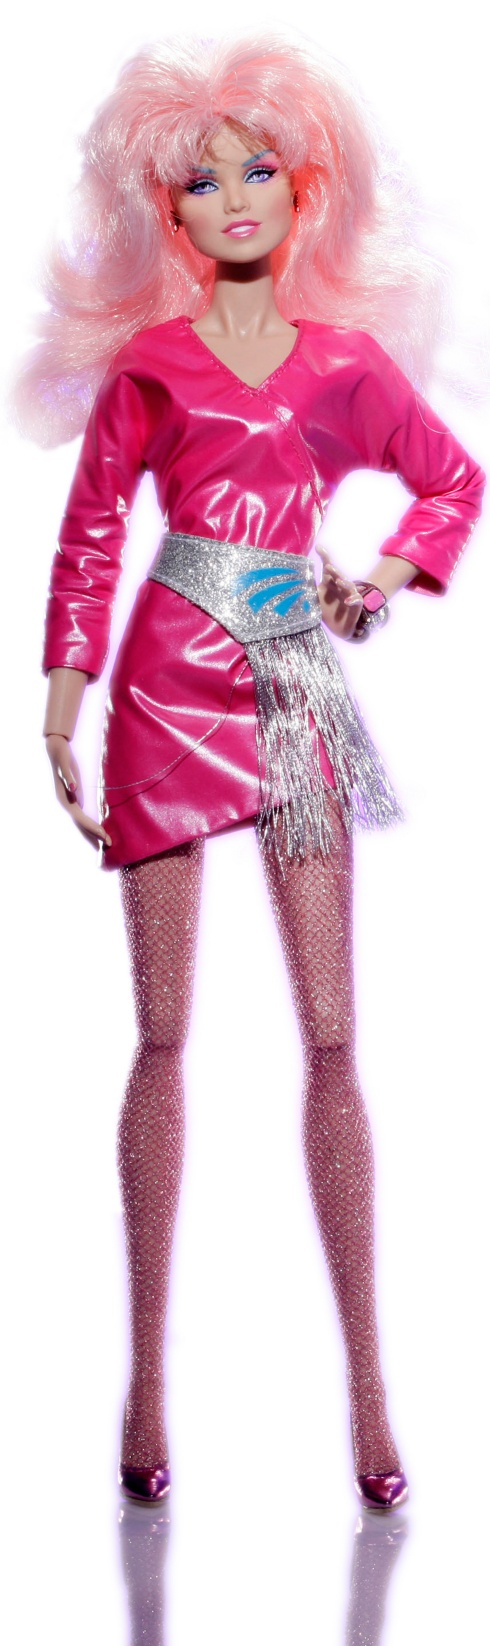 JEM Doll | Holt Renfrew - she's truly outrageous